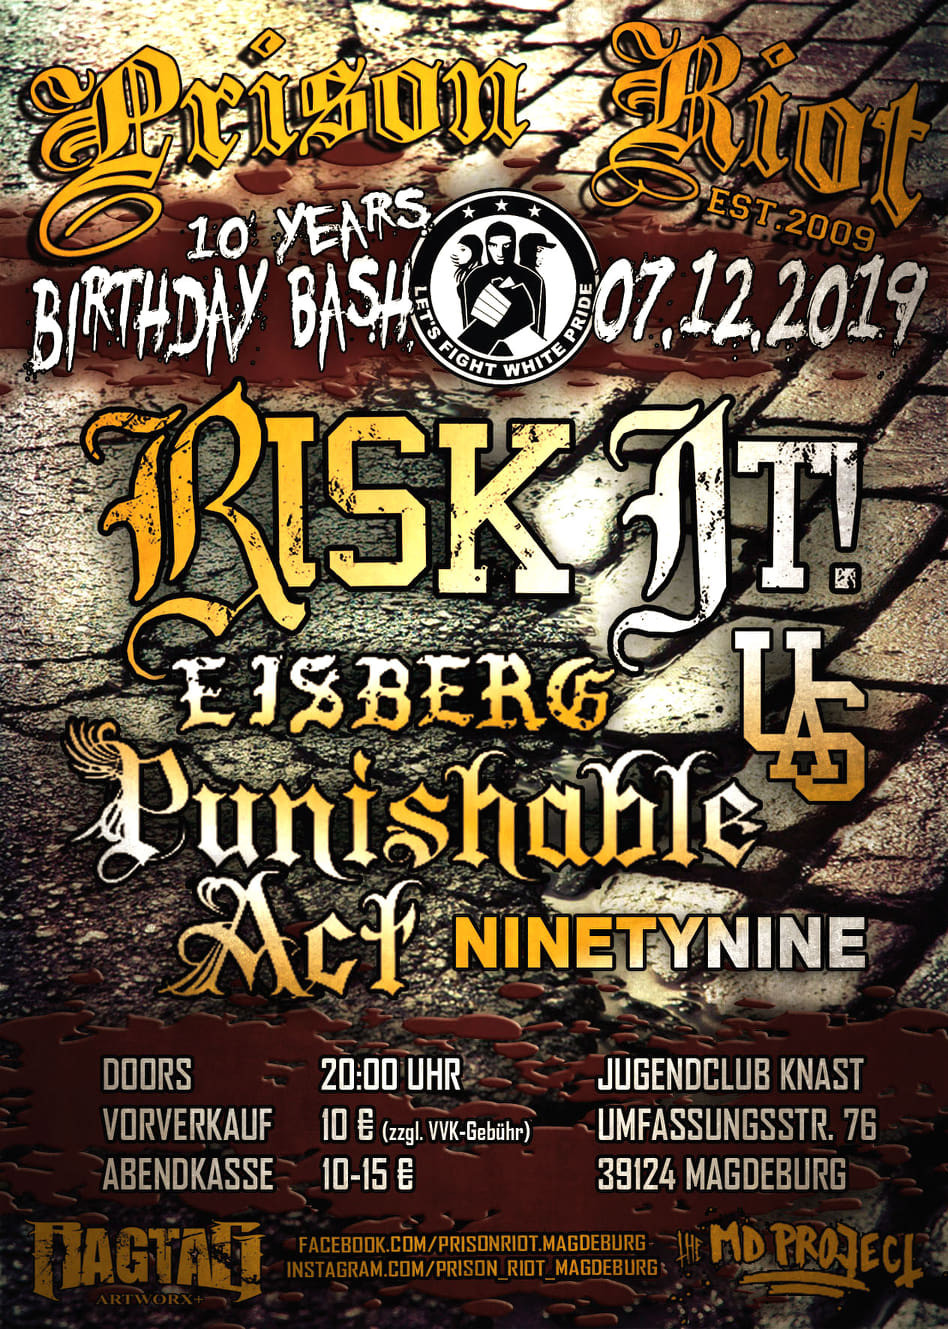 Prison Riot - 10 Years Birthday Bash